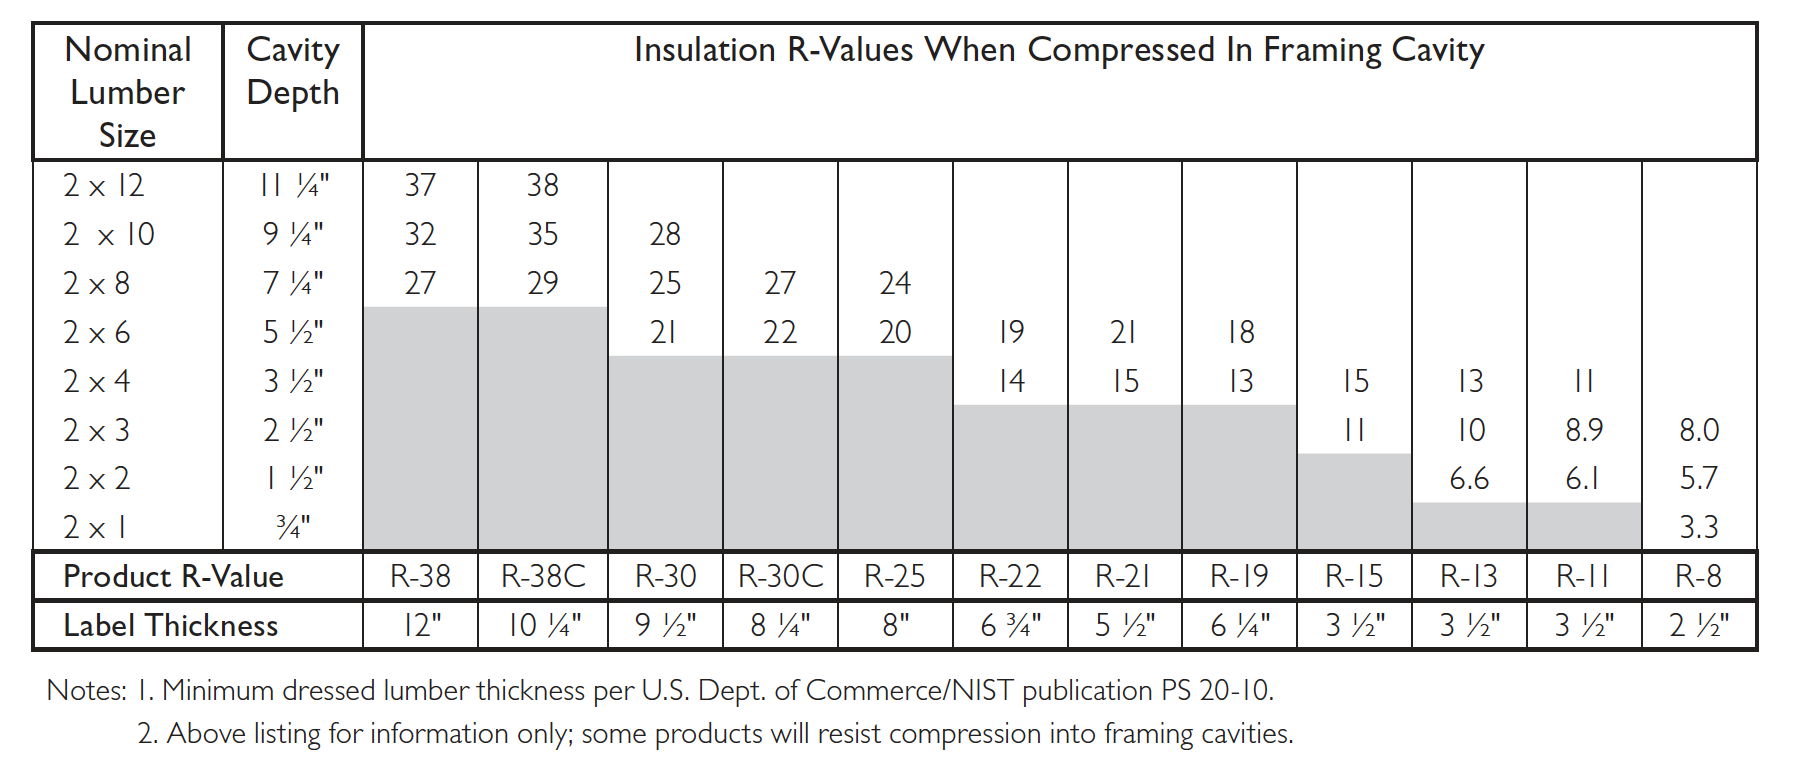 owens-corning-compressed-fiberglass-insulation-r-value-chart